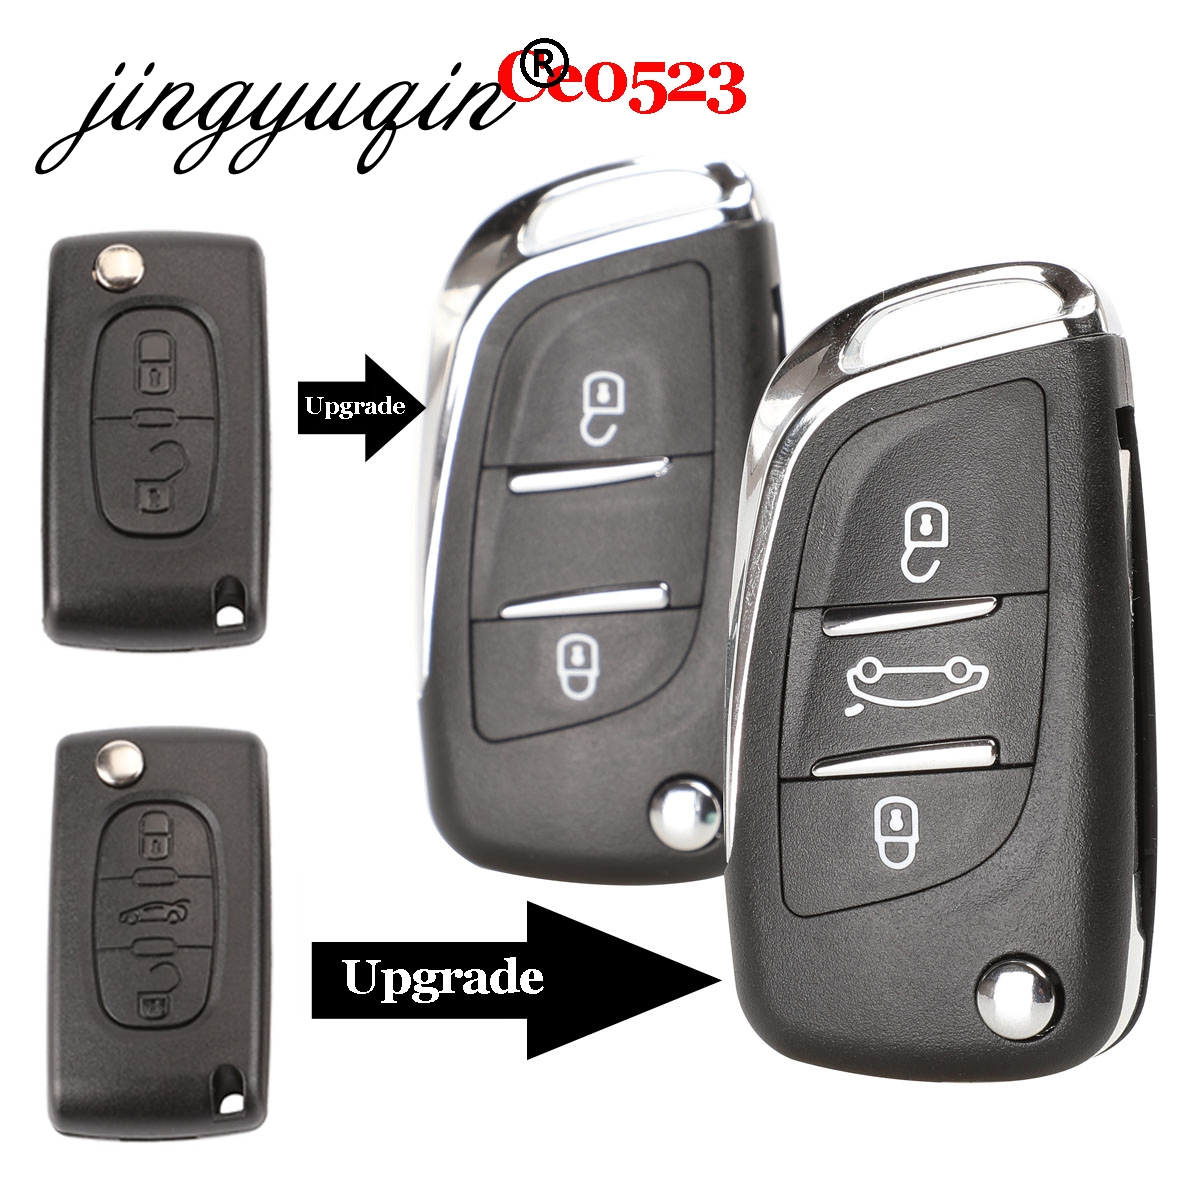 jingyuqin CE0523 Modified Flip Folding Key Shell For Peugeot 306 407 807 Partner Remote VA2/HU83 Blade Entry Fob Case 2/3 Buttonjingyuqin CE0523 Modified Flip Folding Key Shell For Peugeot 306 407 807 Partner Remote VA2/HU83 Blade Entry Fob Case 2/3 Button